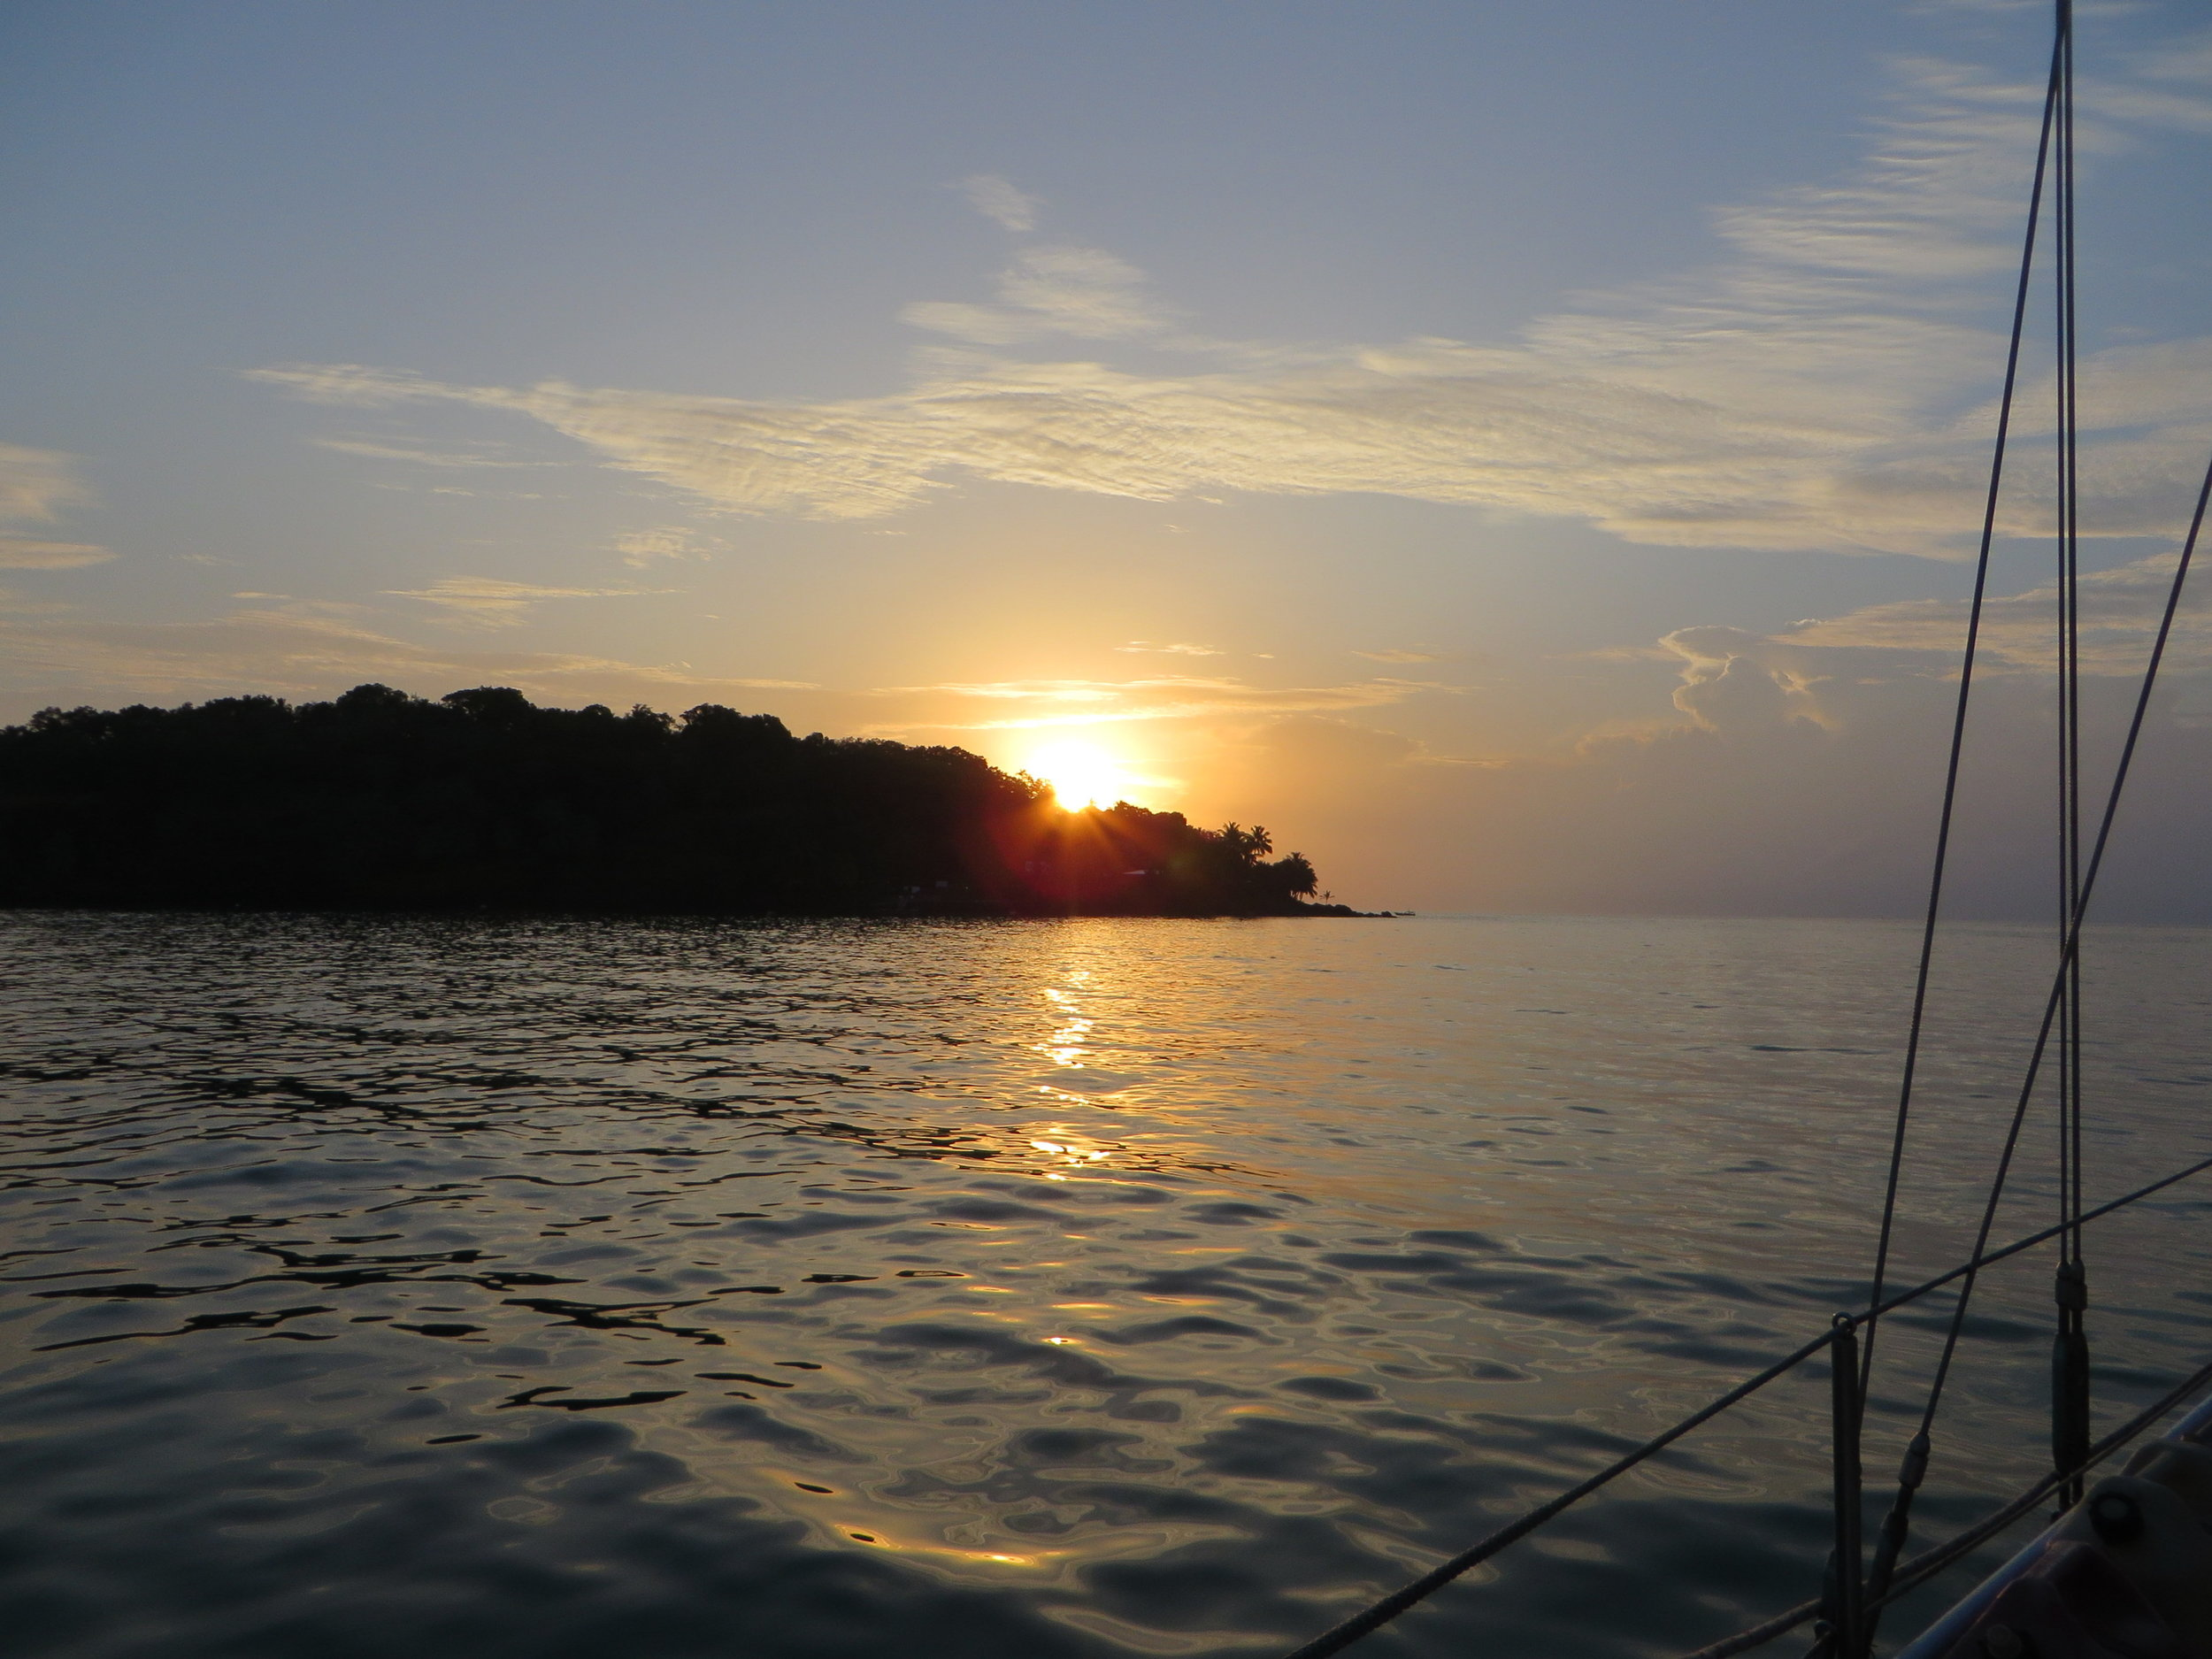 Anchored at Iles du Salut, French Guiana ... a beautiful sunrise after 26 days at sea.